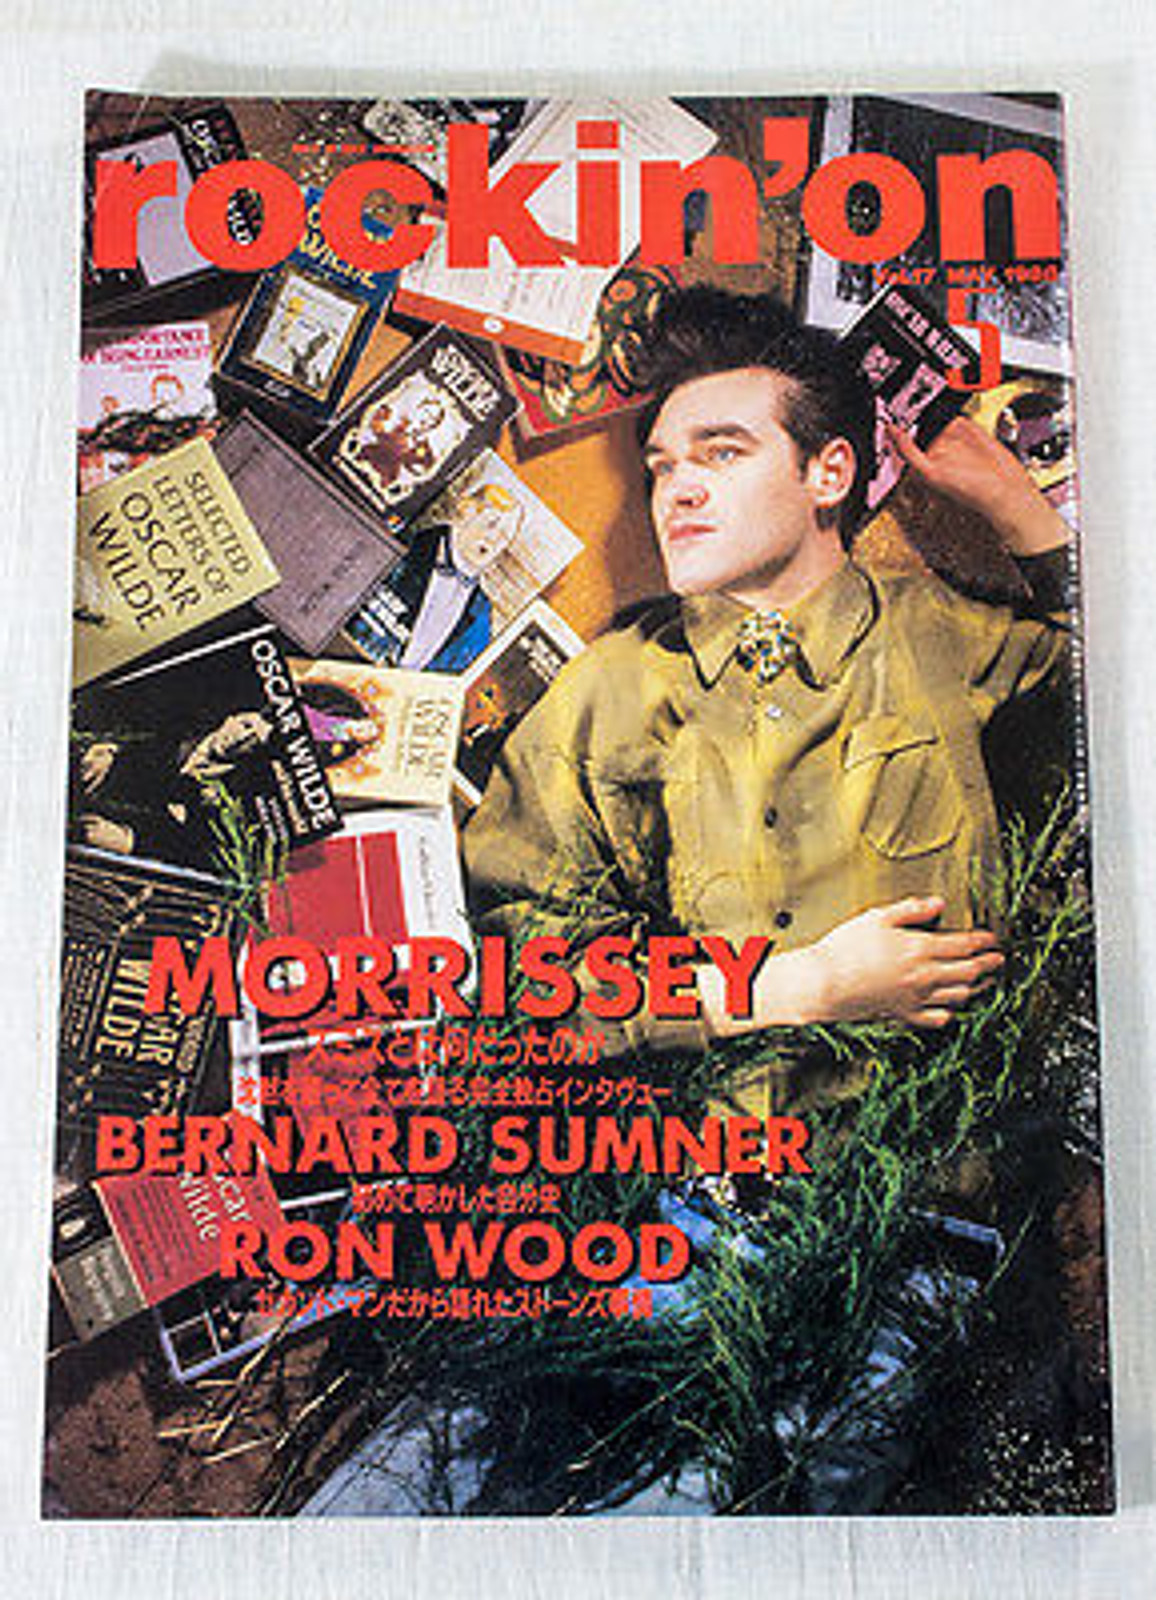 Rockin' On Japan Rock Music Magazine 05/1988 Morrissey/Ron Wood